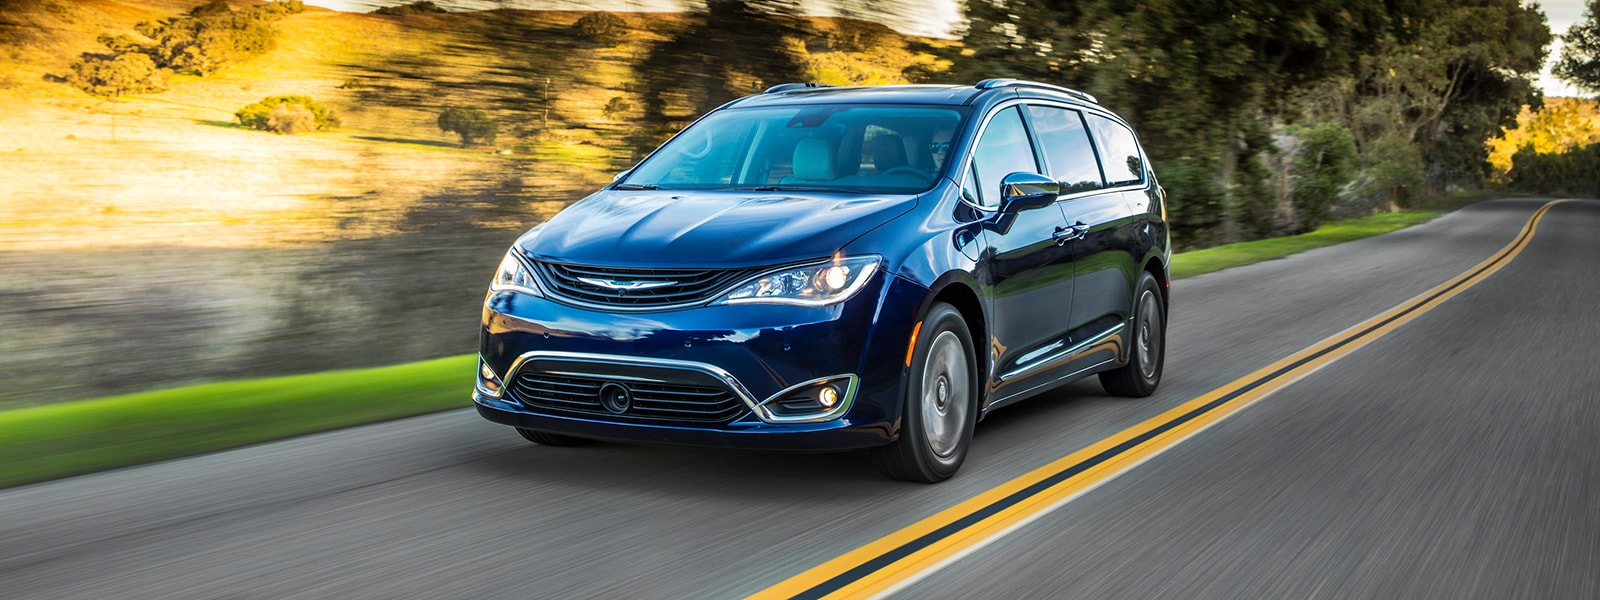 west-palm-beach-chrysler-pacifica-sale